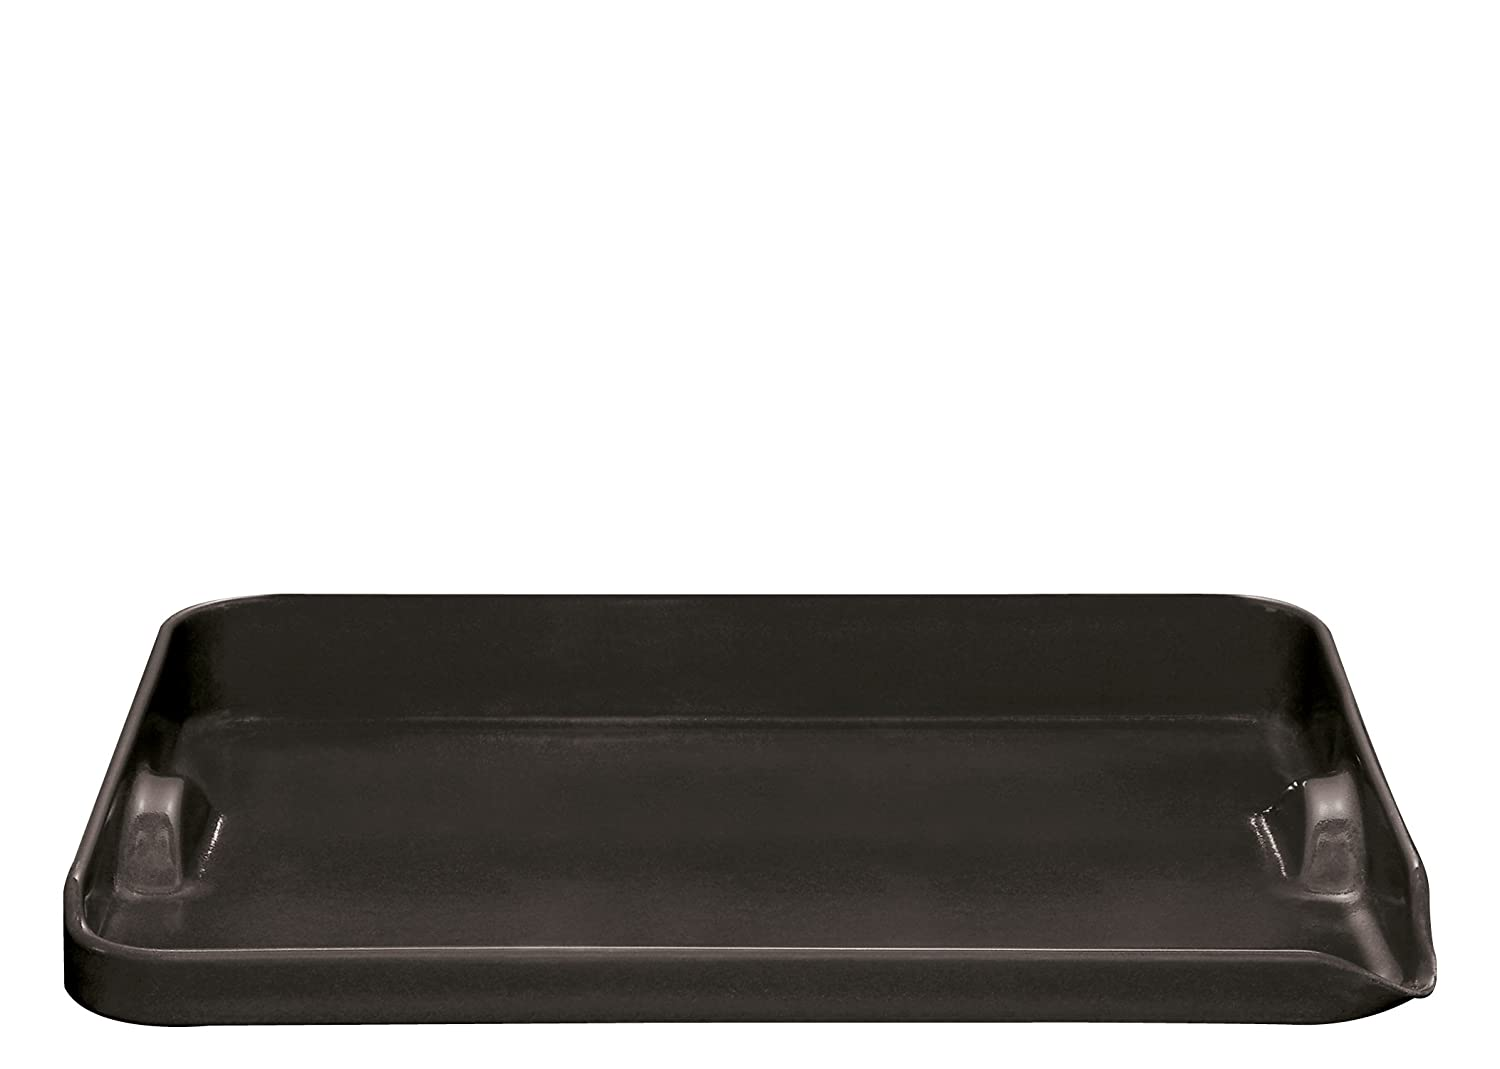 Amazon.com: Emile Henry Made In France Flame BBQ Plancha, 15.4 x 12.2